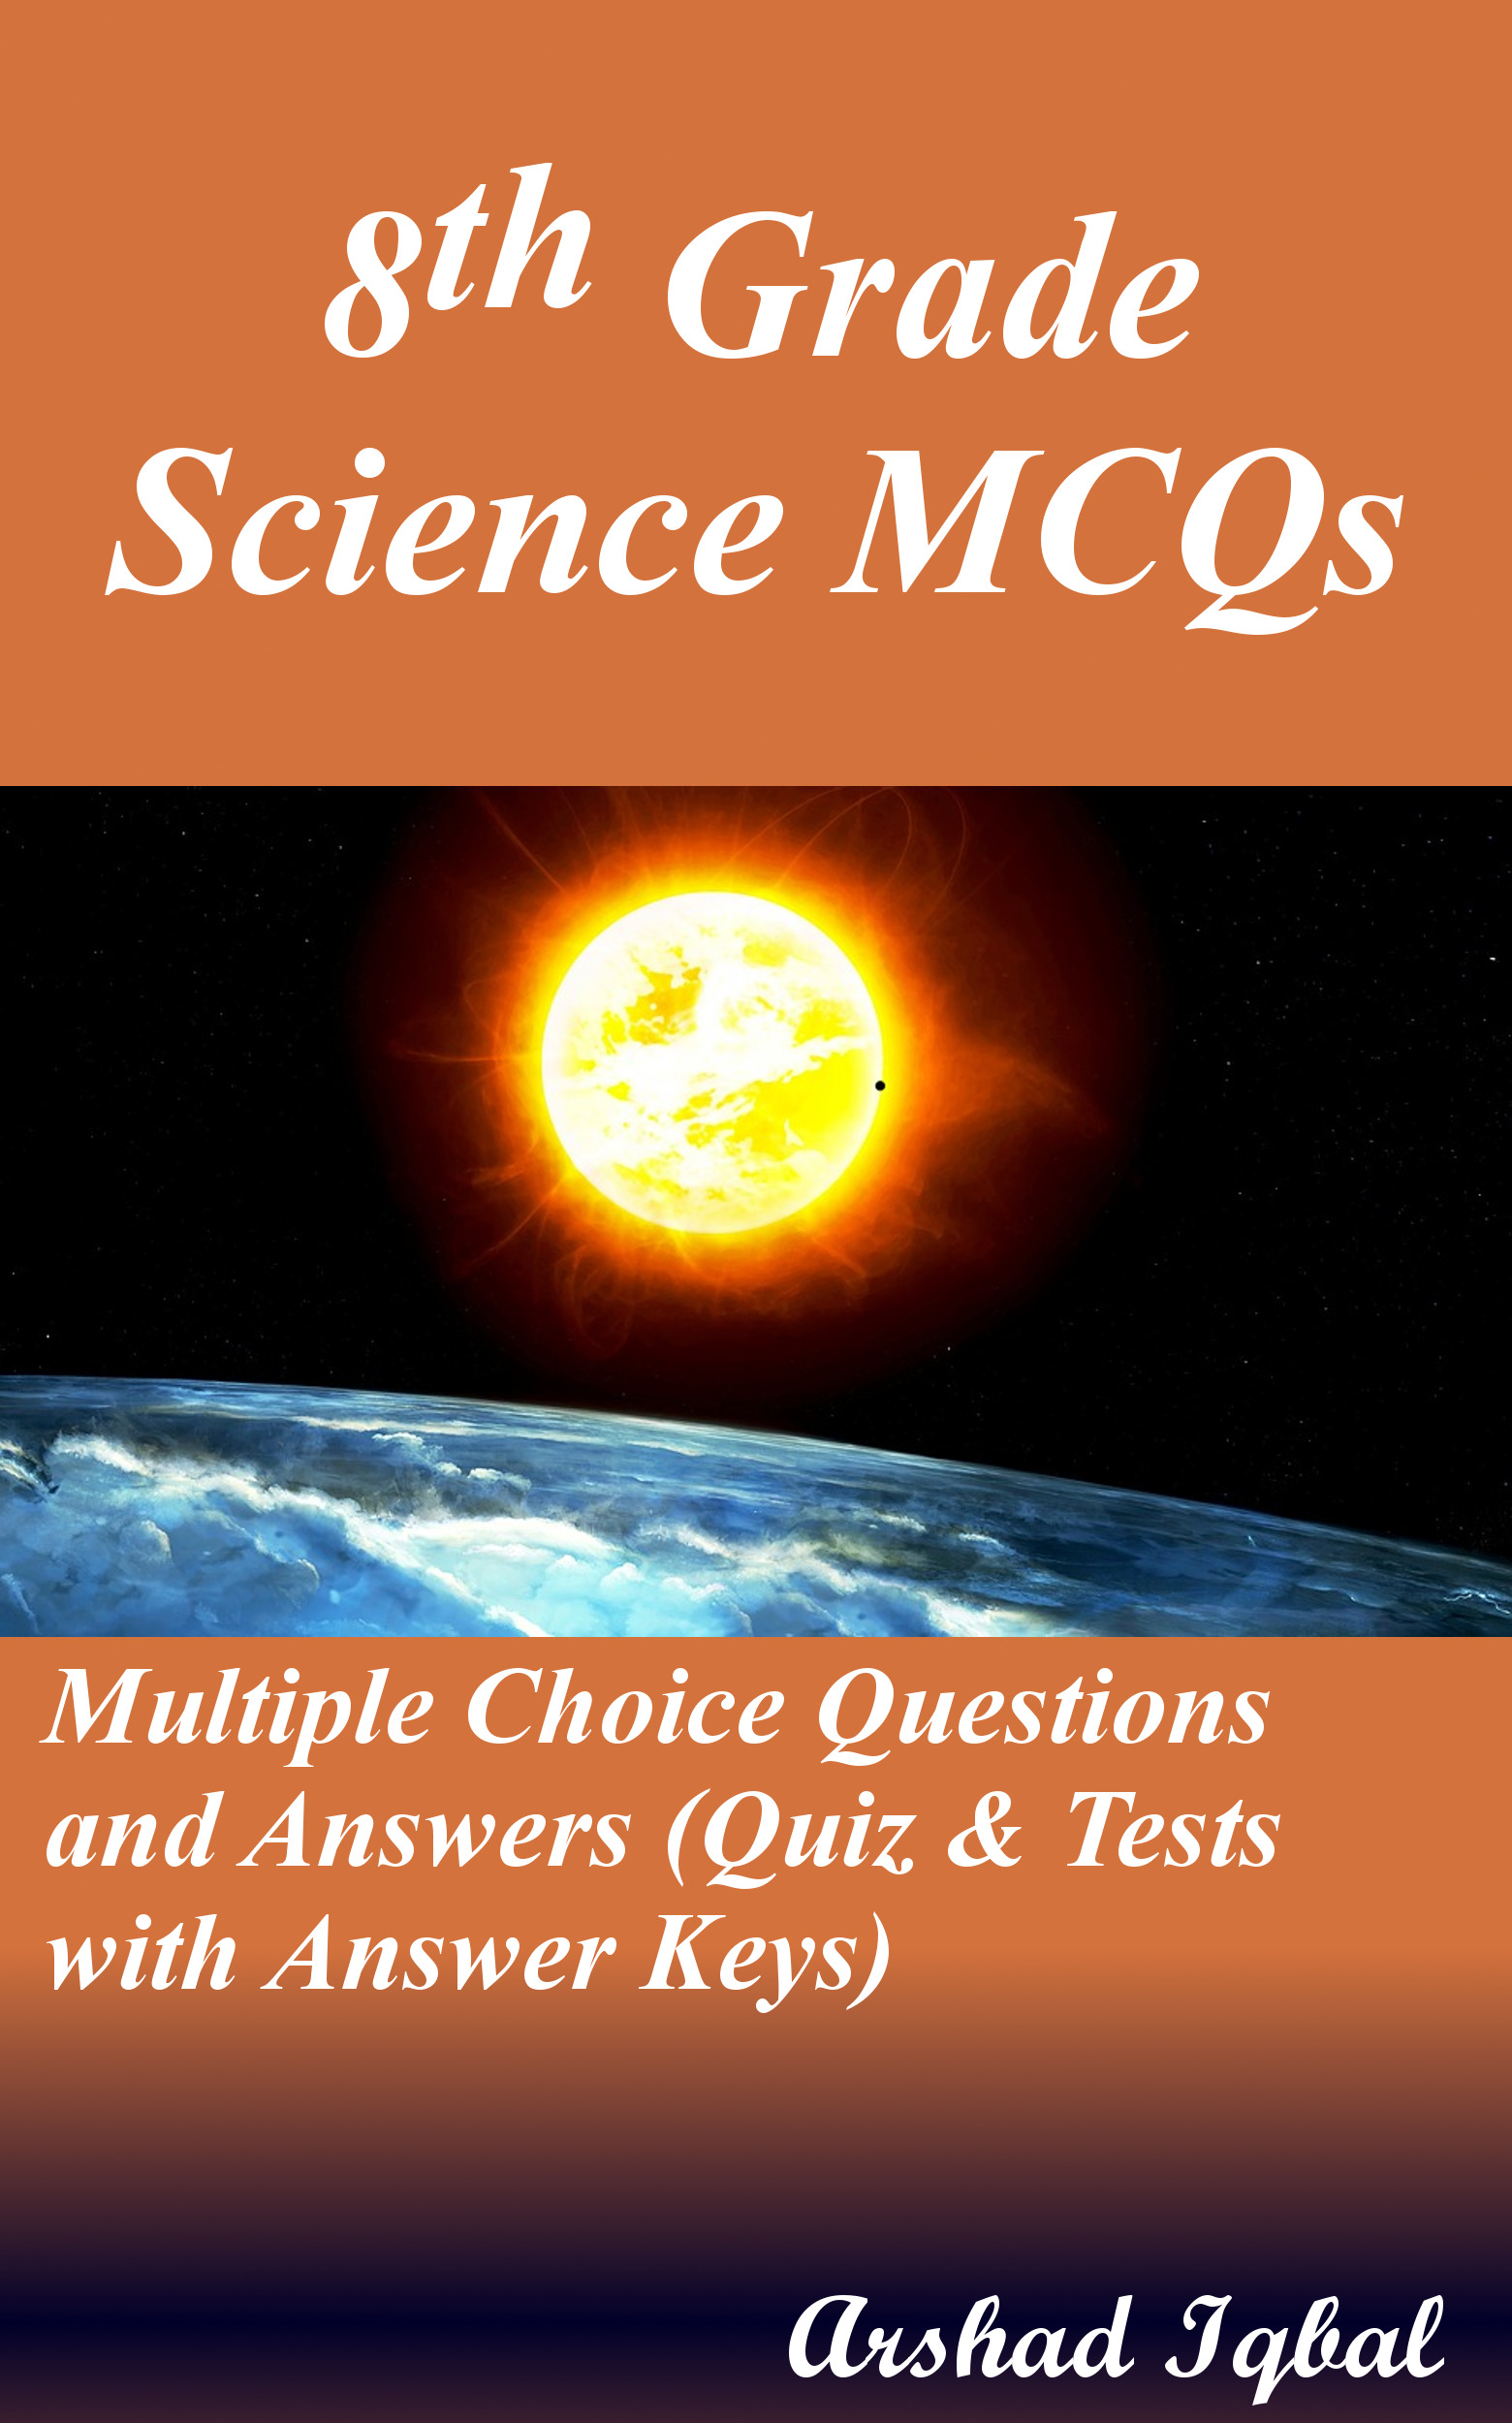 Grade 8 Science MCQs: Multiple Choice Questions and Answers (Quiz & Tests with Answer Keys)